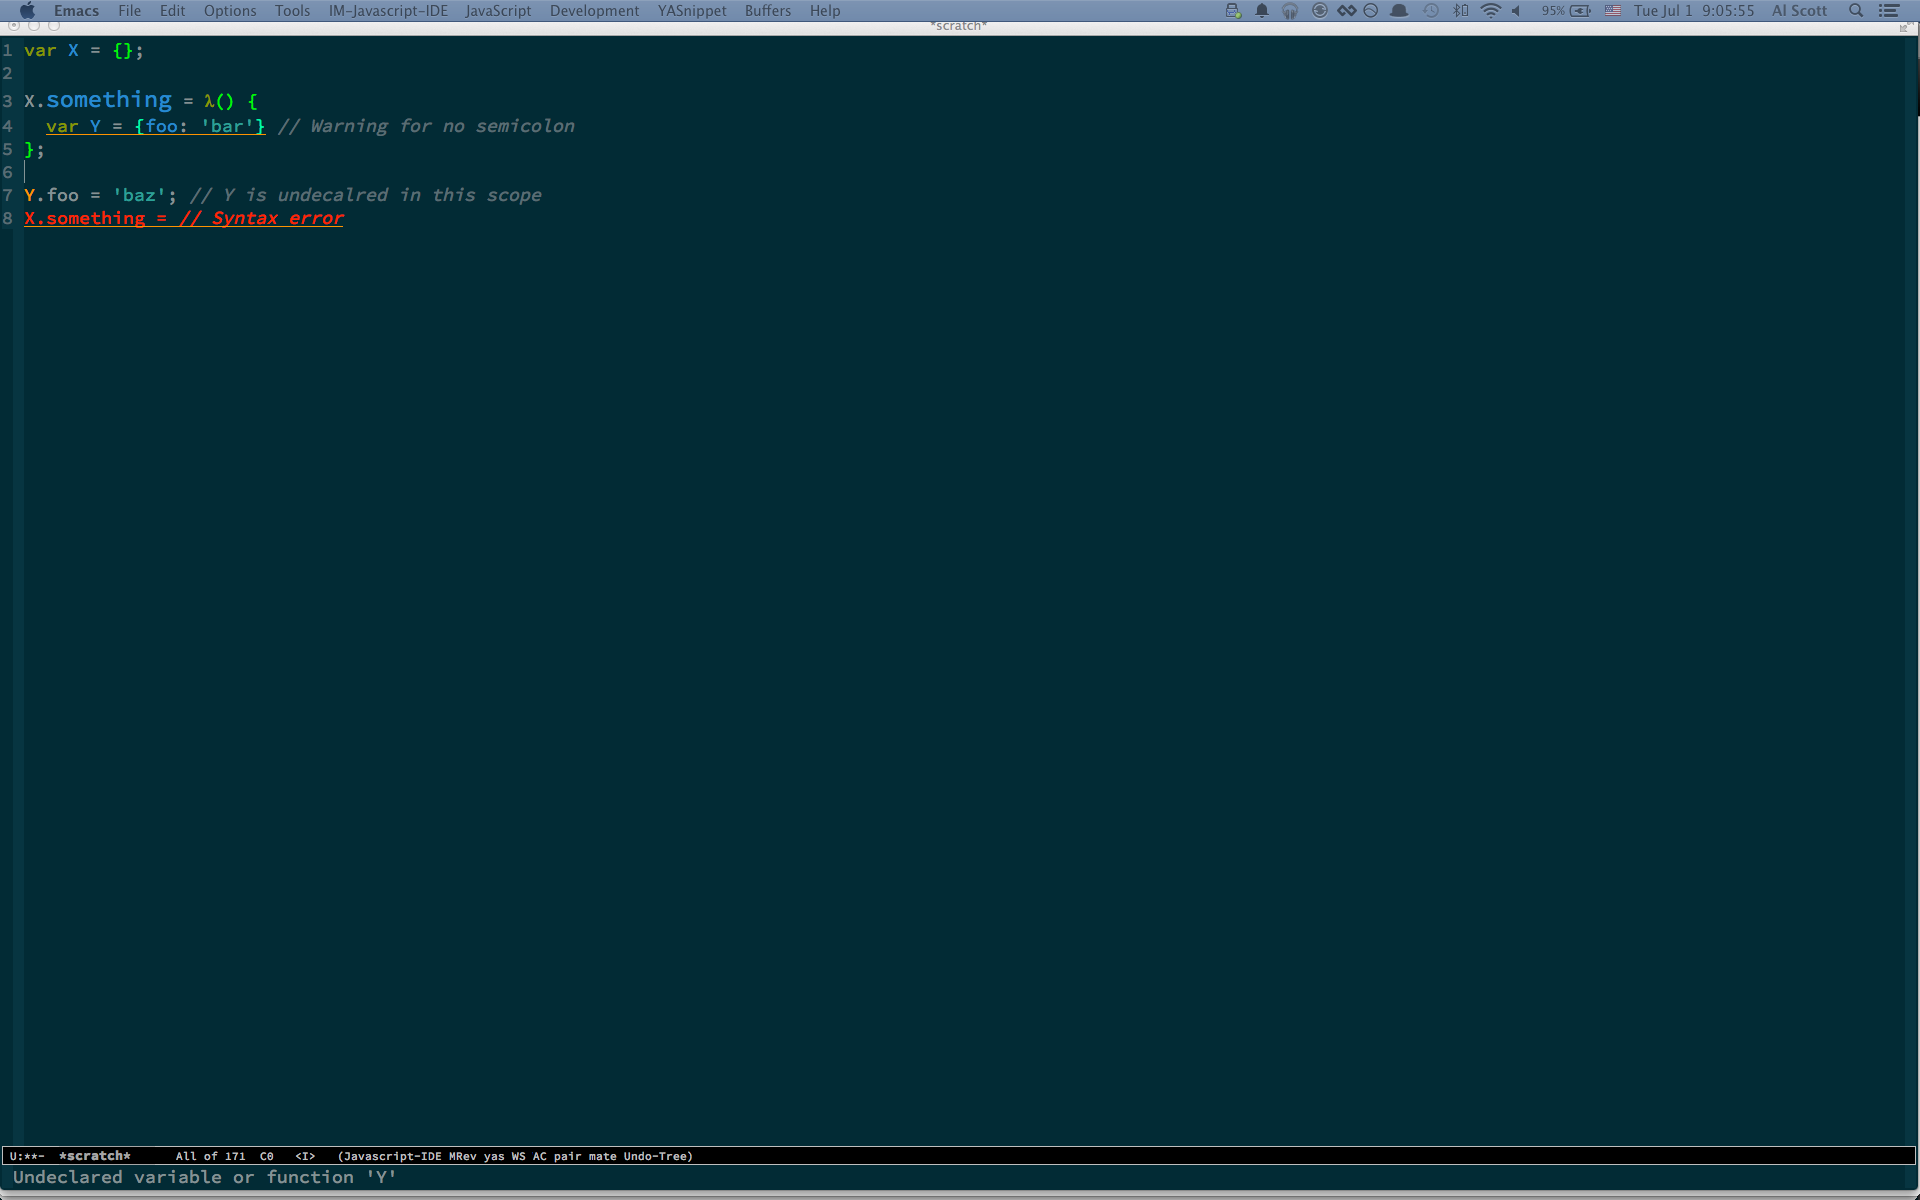 Js2 Mode in Emacs